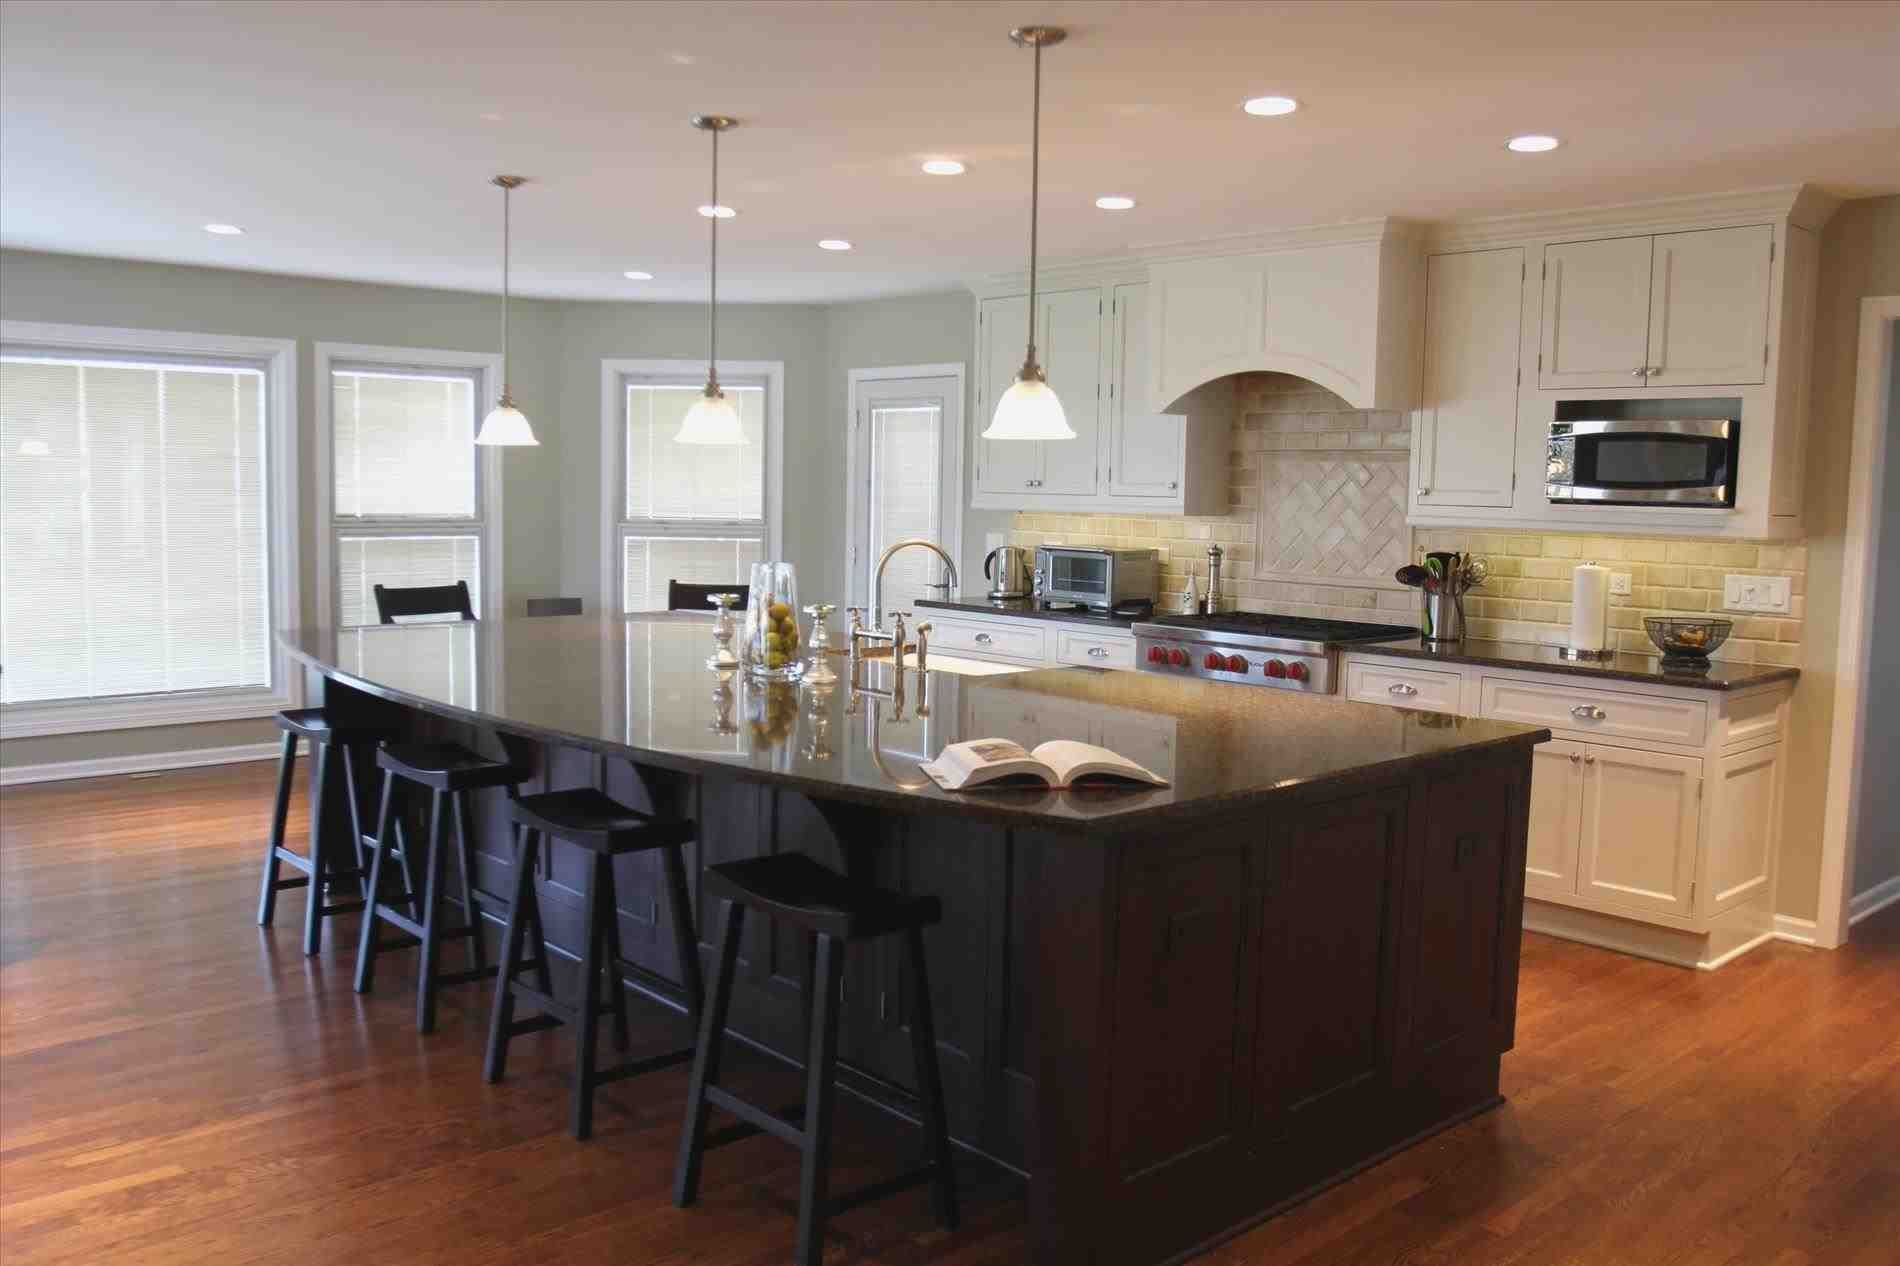 New post big kitchen islands for sale